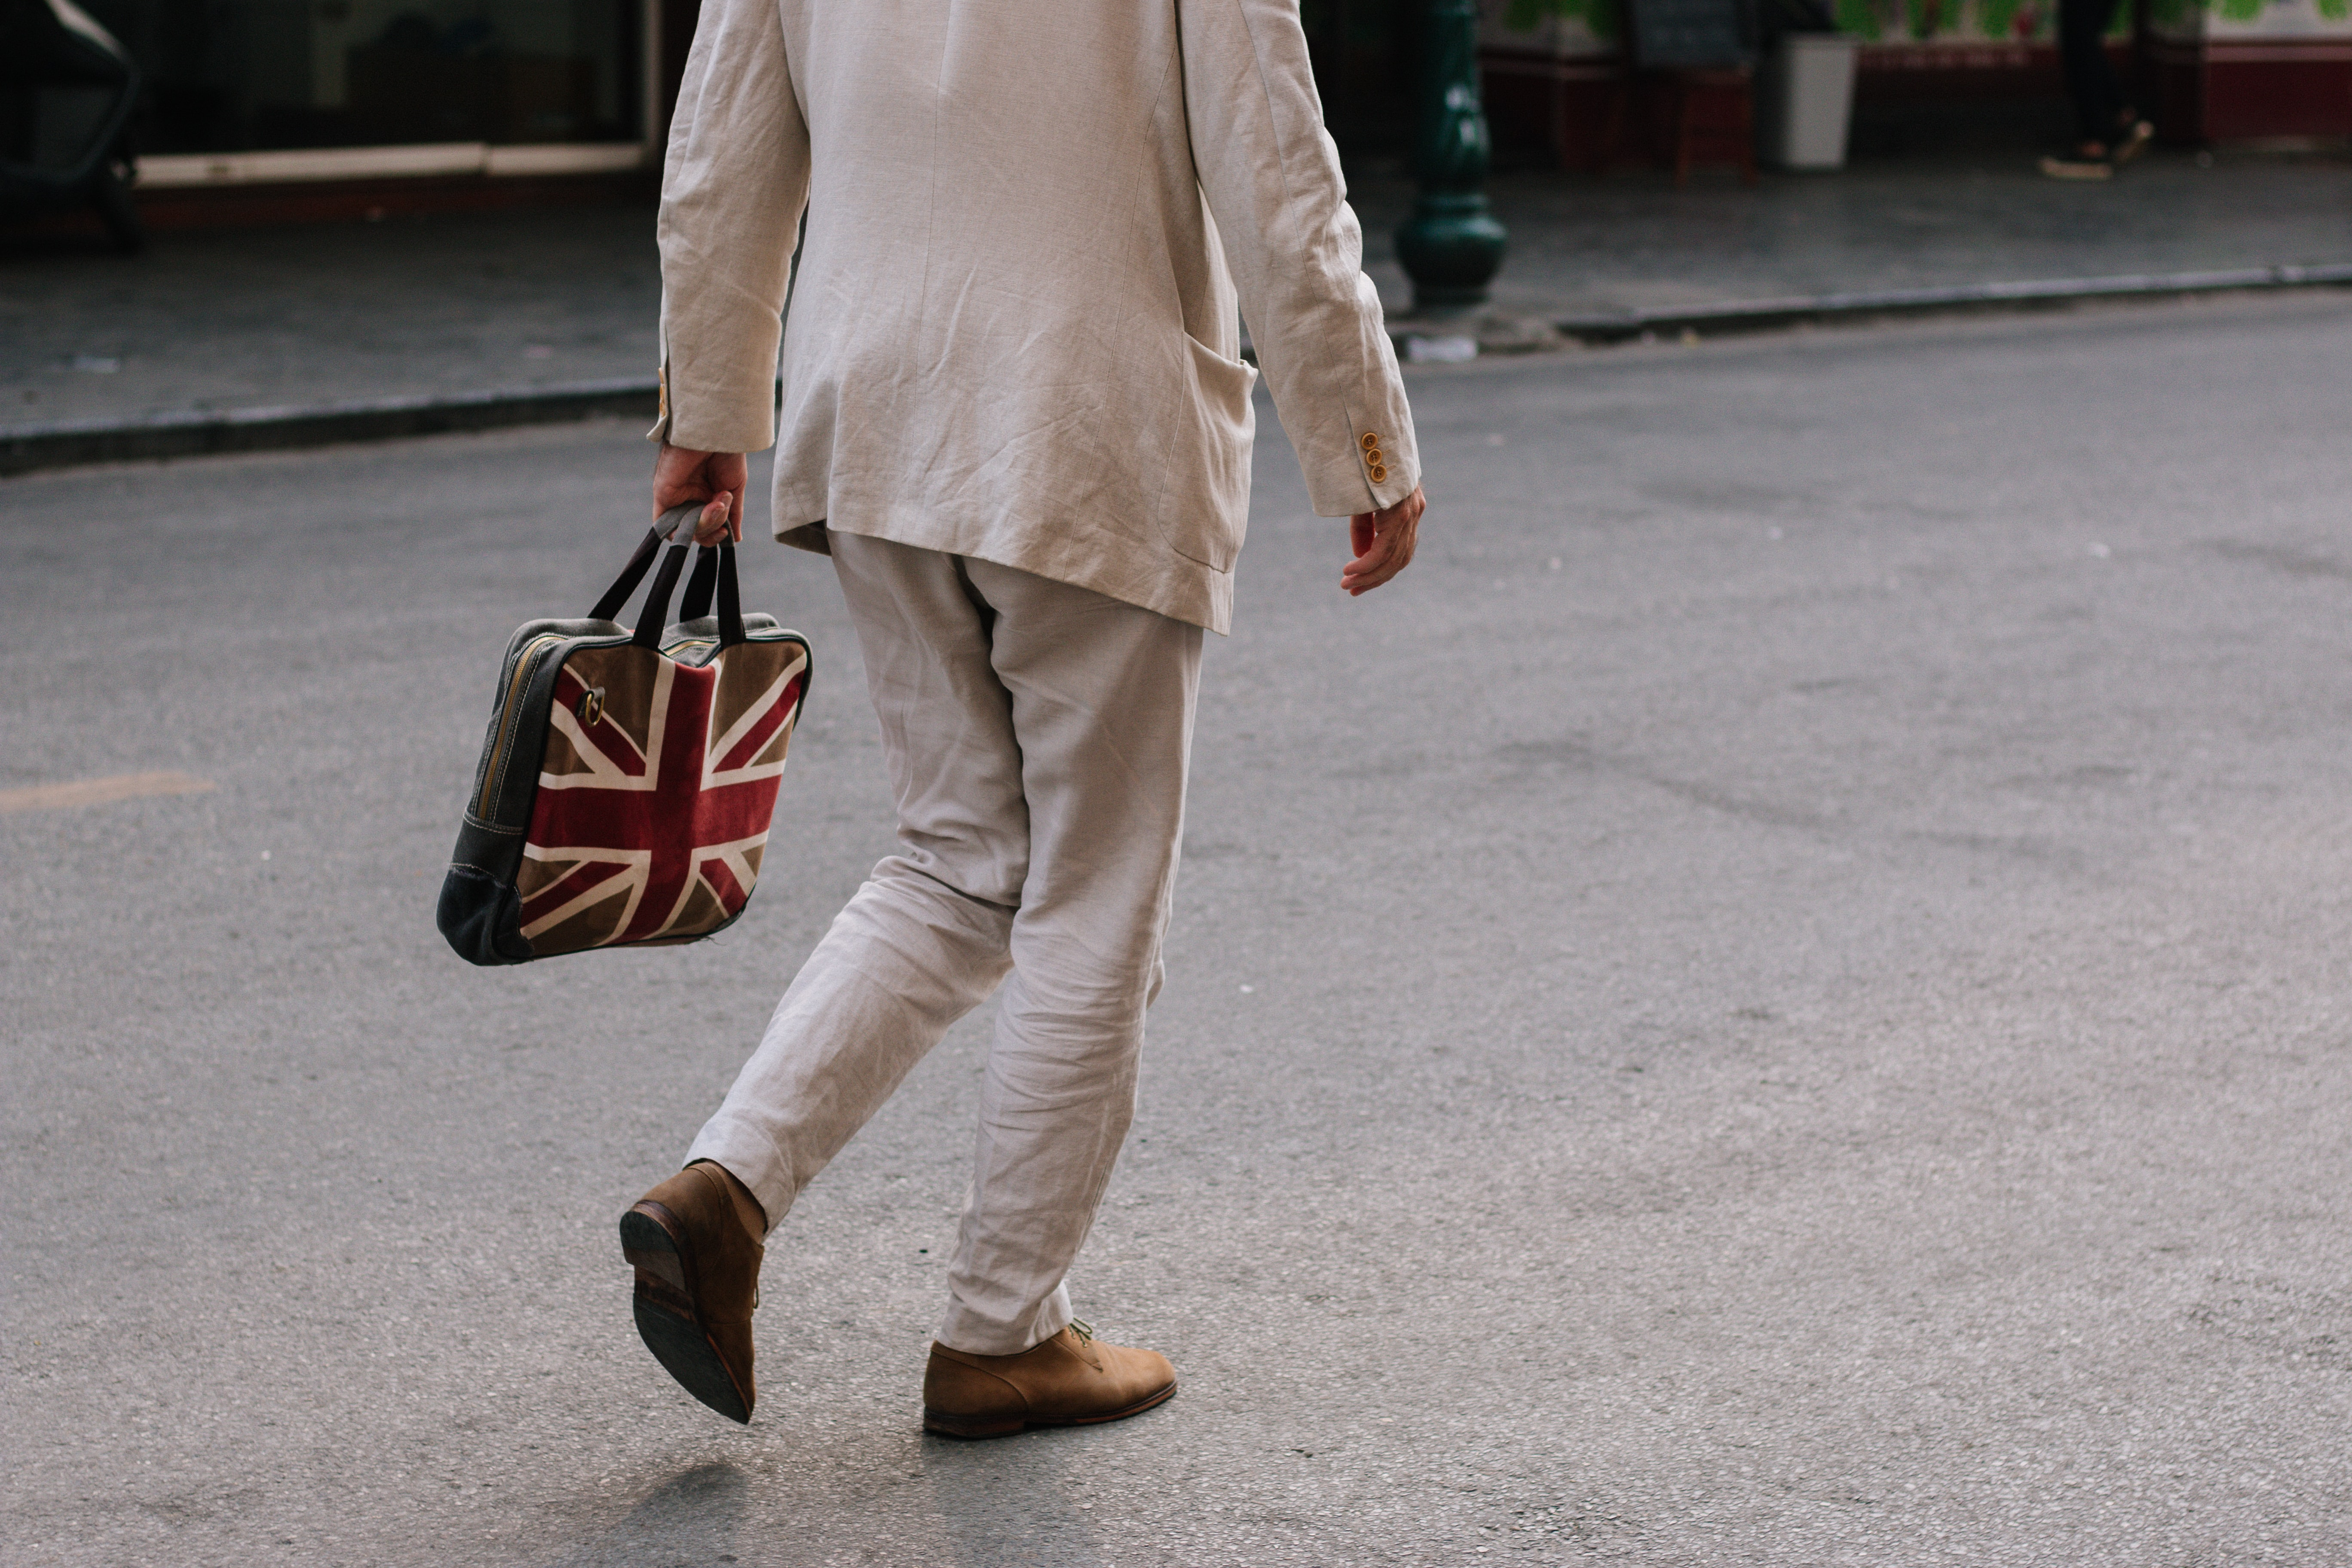 man walking while holding handbag